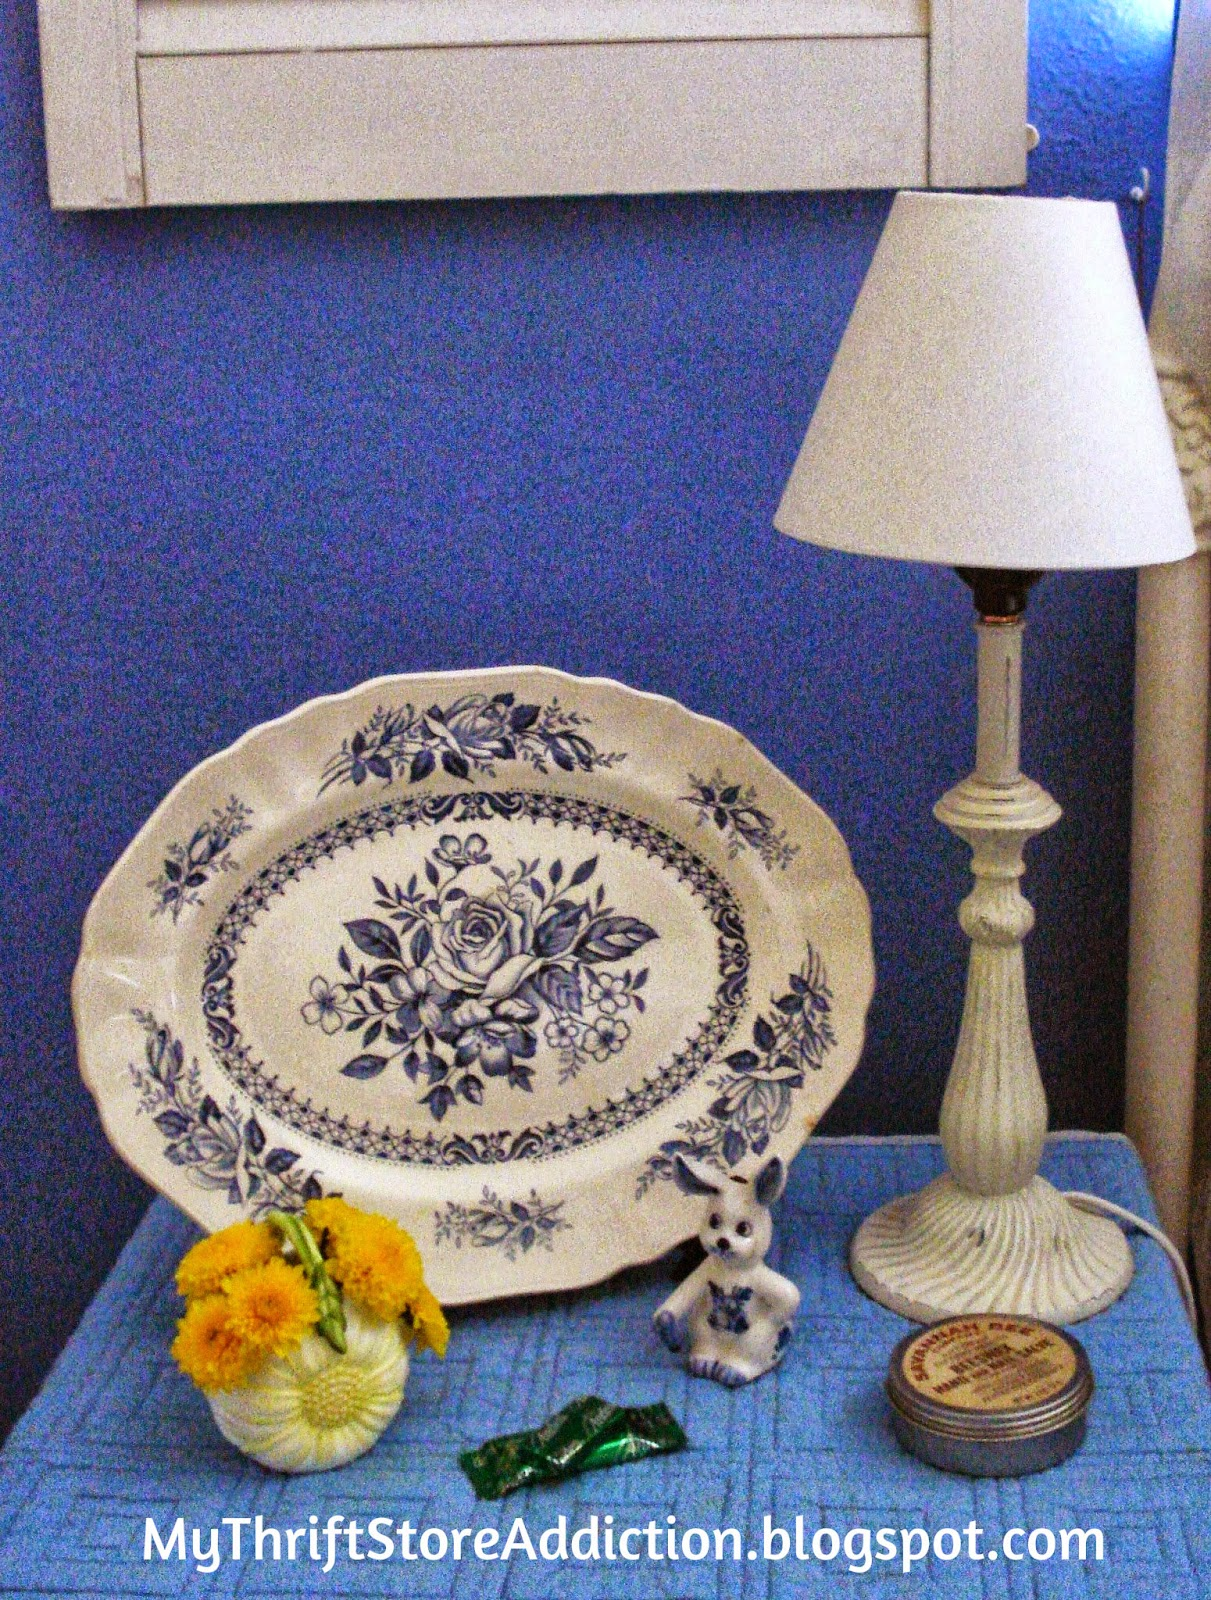 Warm and Cozy Guest Rooms  mythriftstoreaddiction.blogspot.com  Fresh flowers, a reading lamp and mints offer a warm welcome.